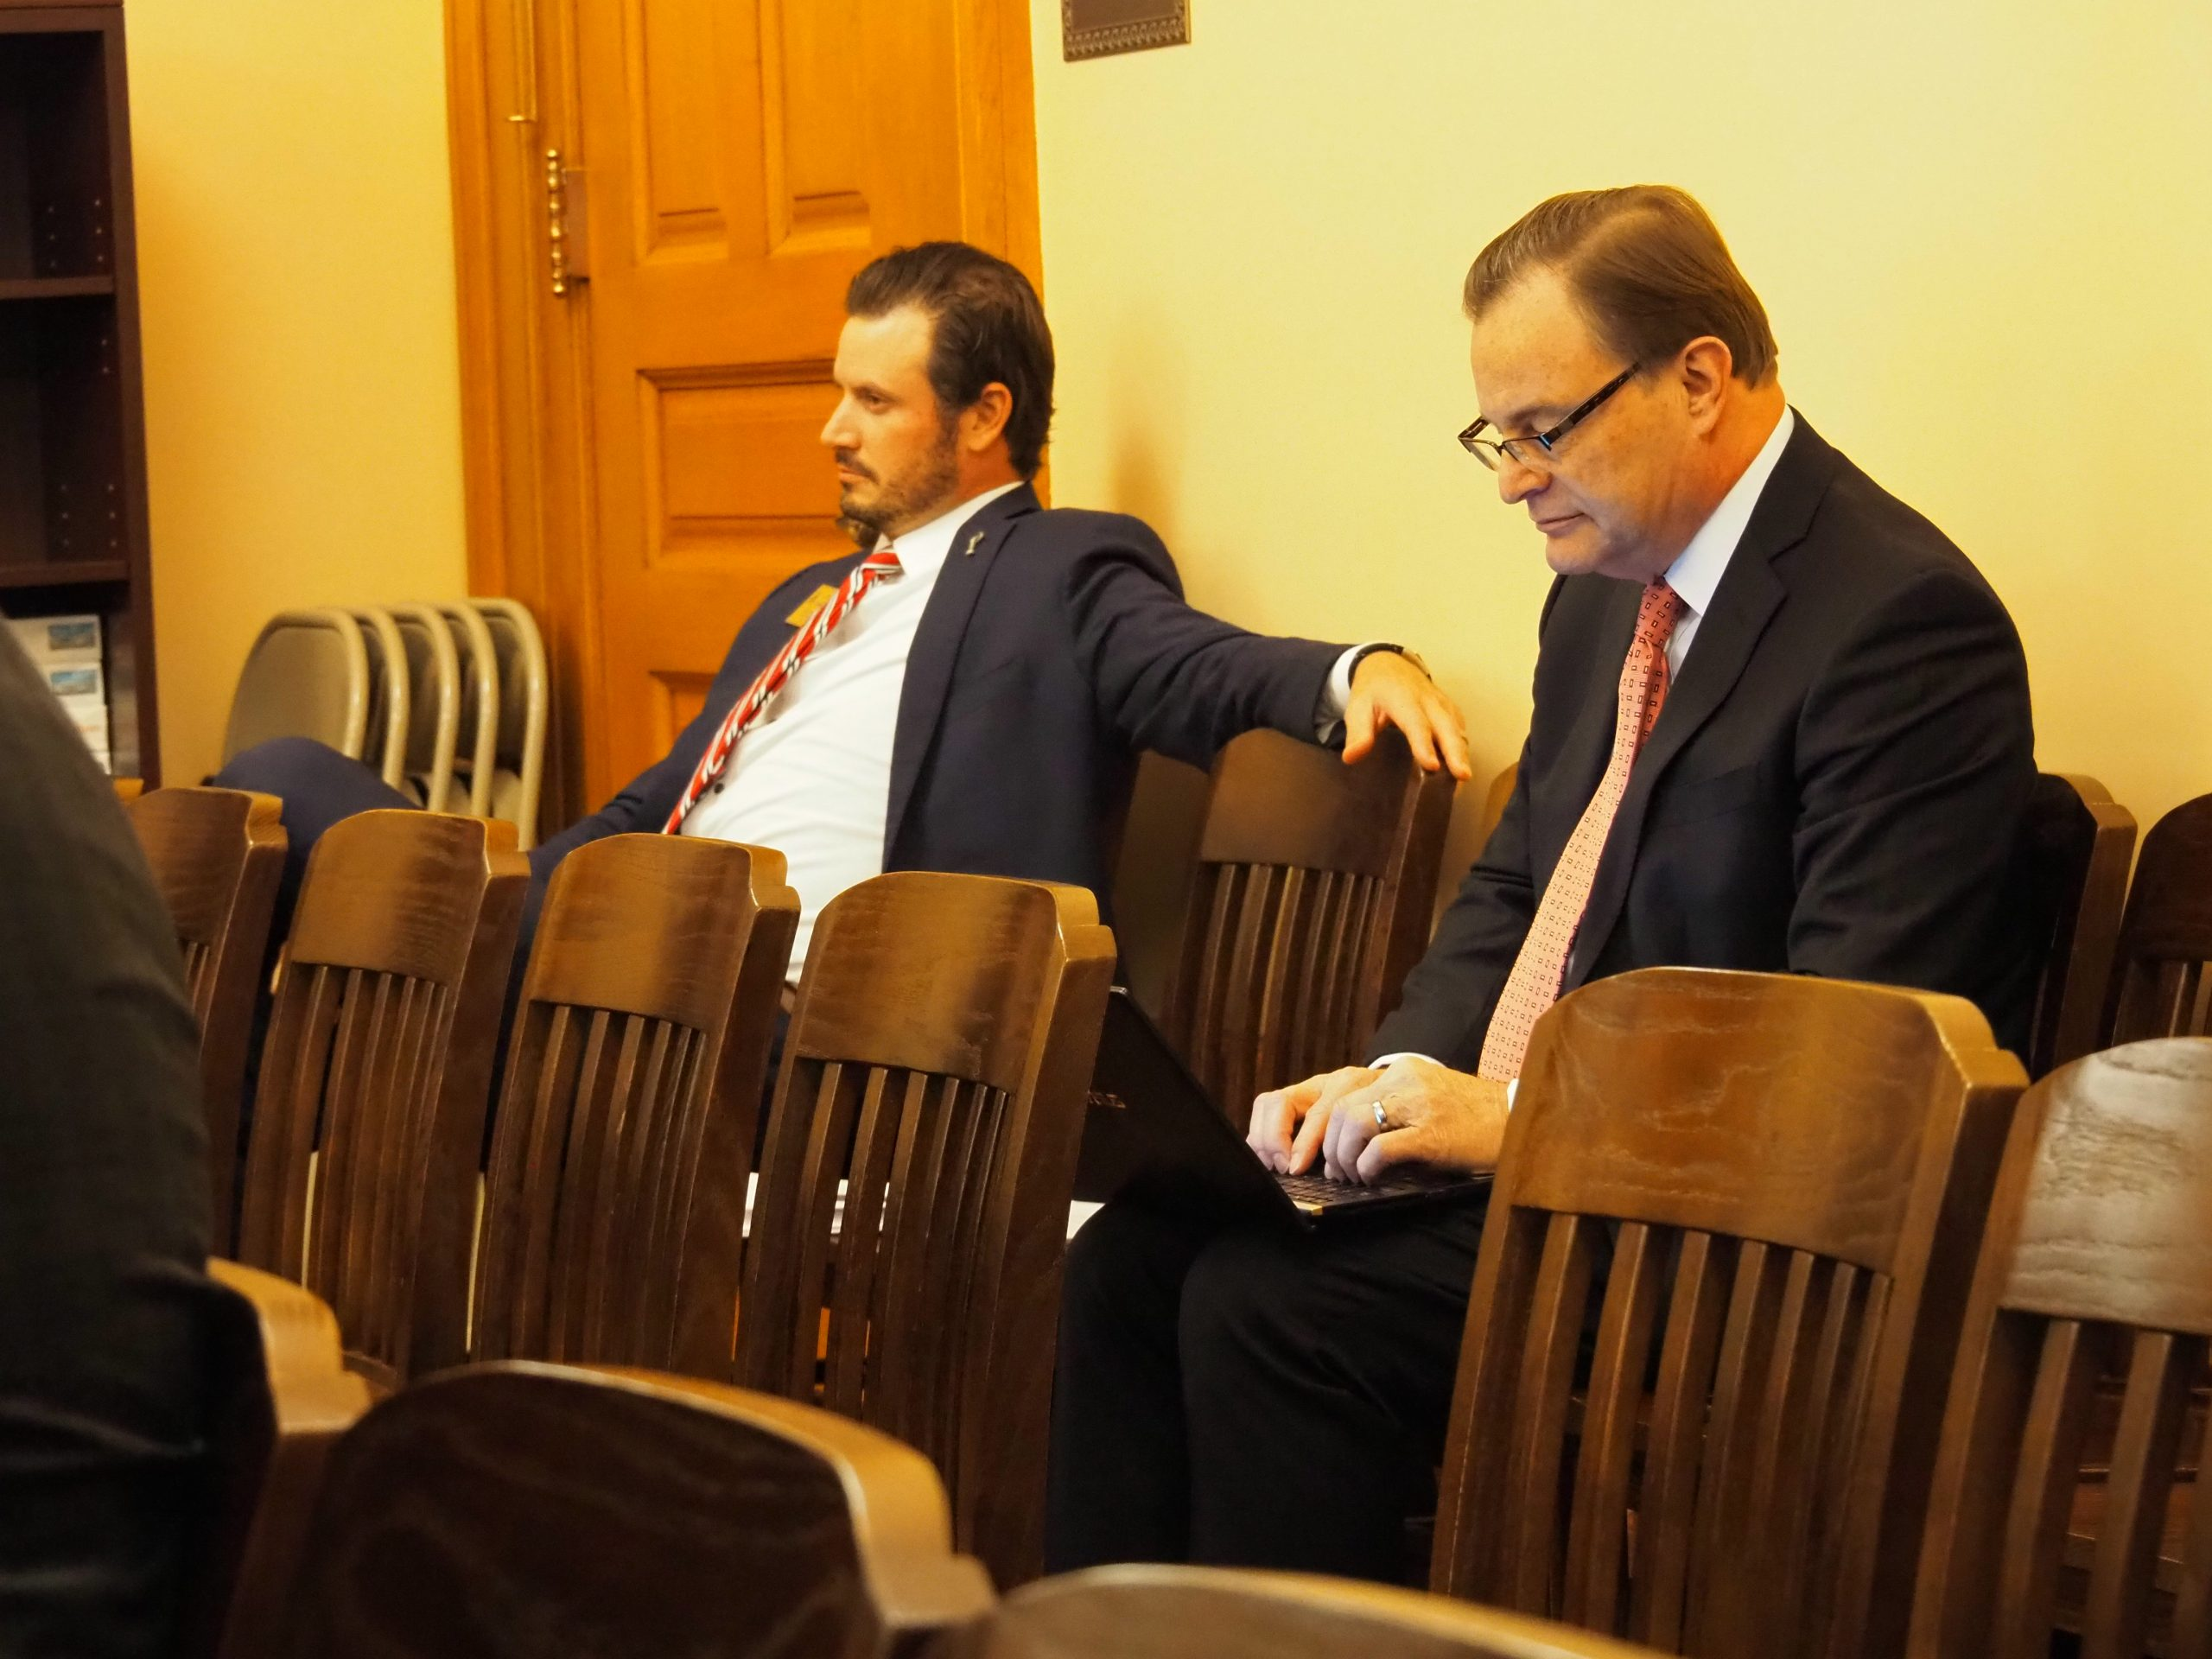 Eric Stafford, left, of the Kansas Chamber and Dave Trabert of the Kansas Policy Institute spoke with the Legislature's economic recovery committee about potential tax reforms in wake of the COVID-19 pandemic. (Tim Carpenter/Kansas Reflector)